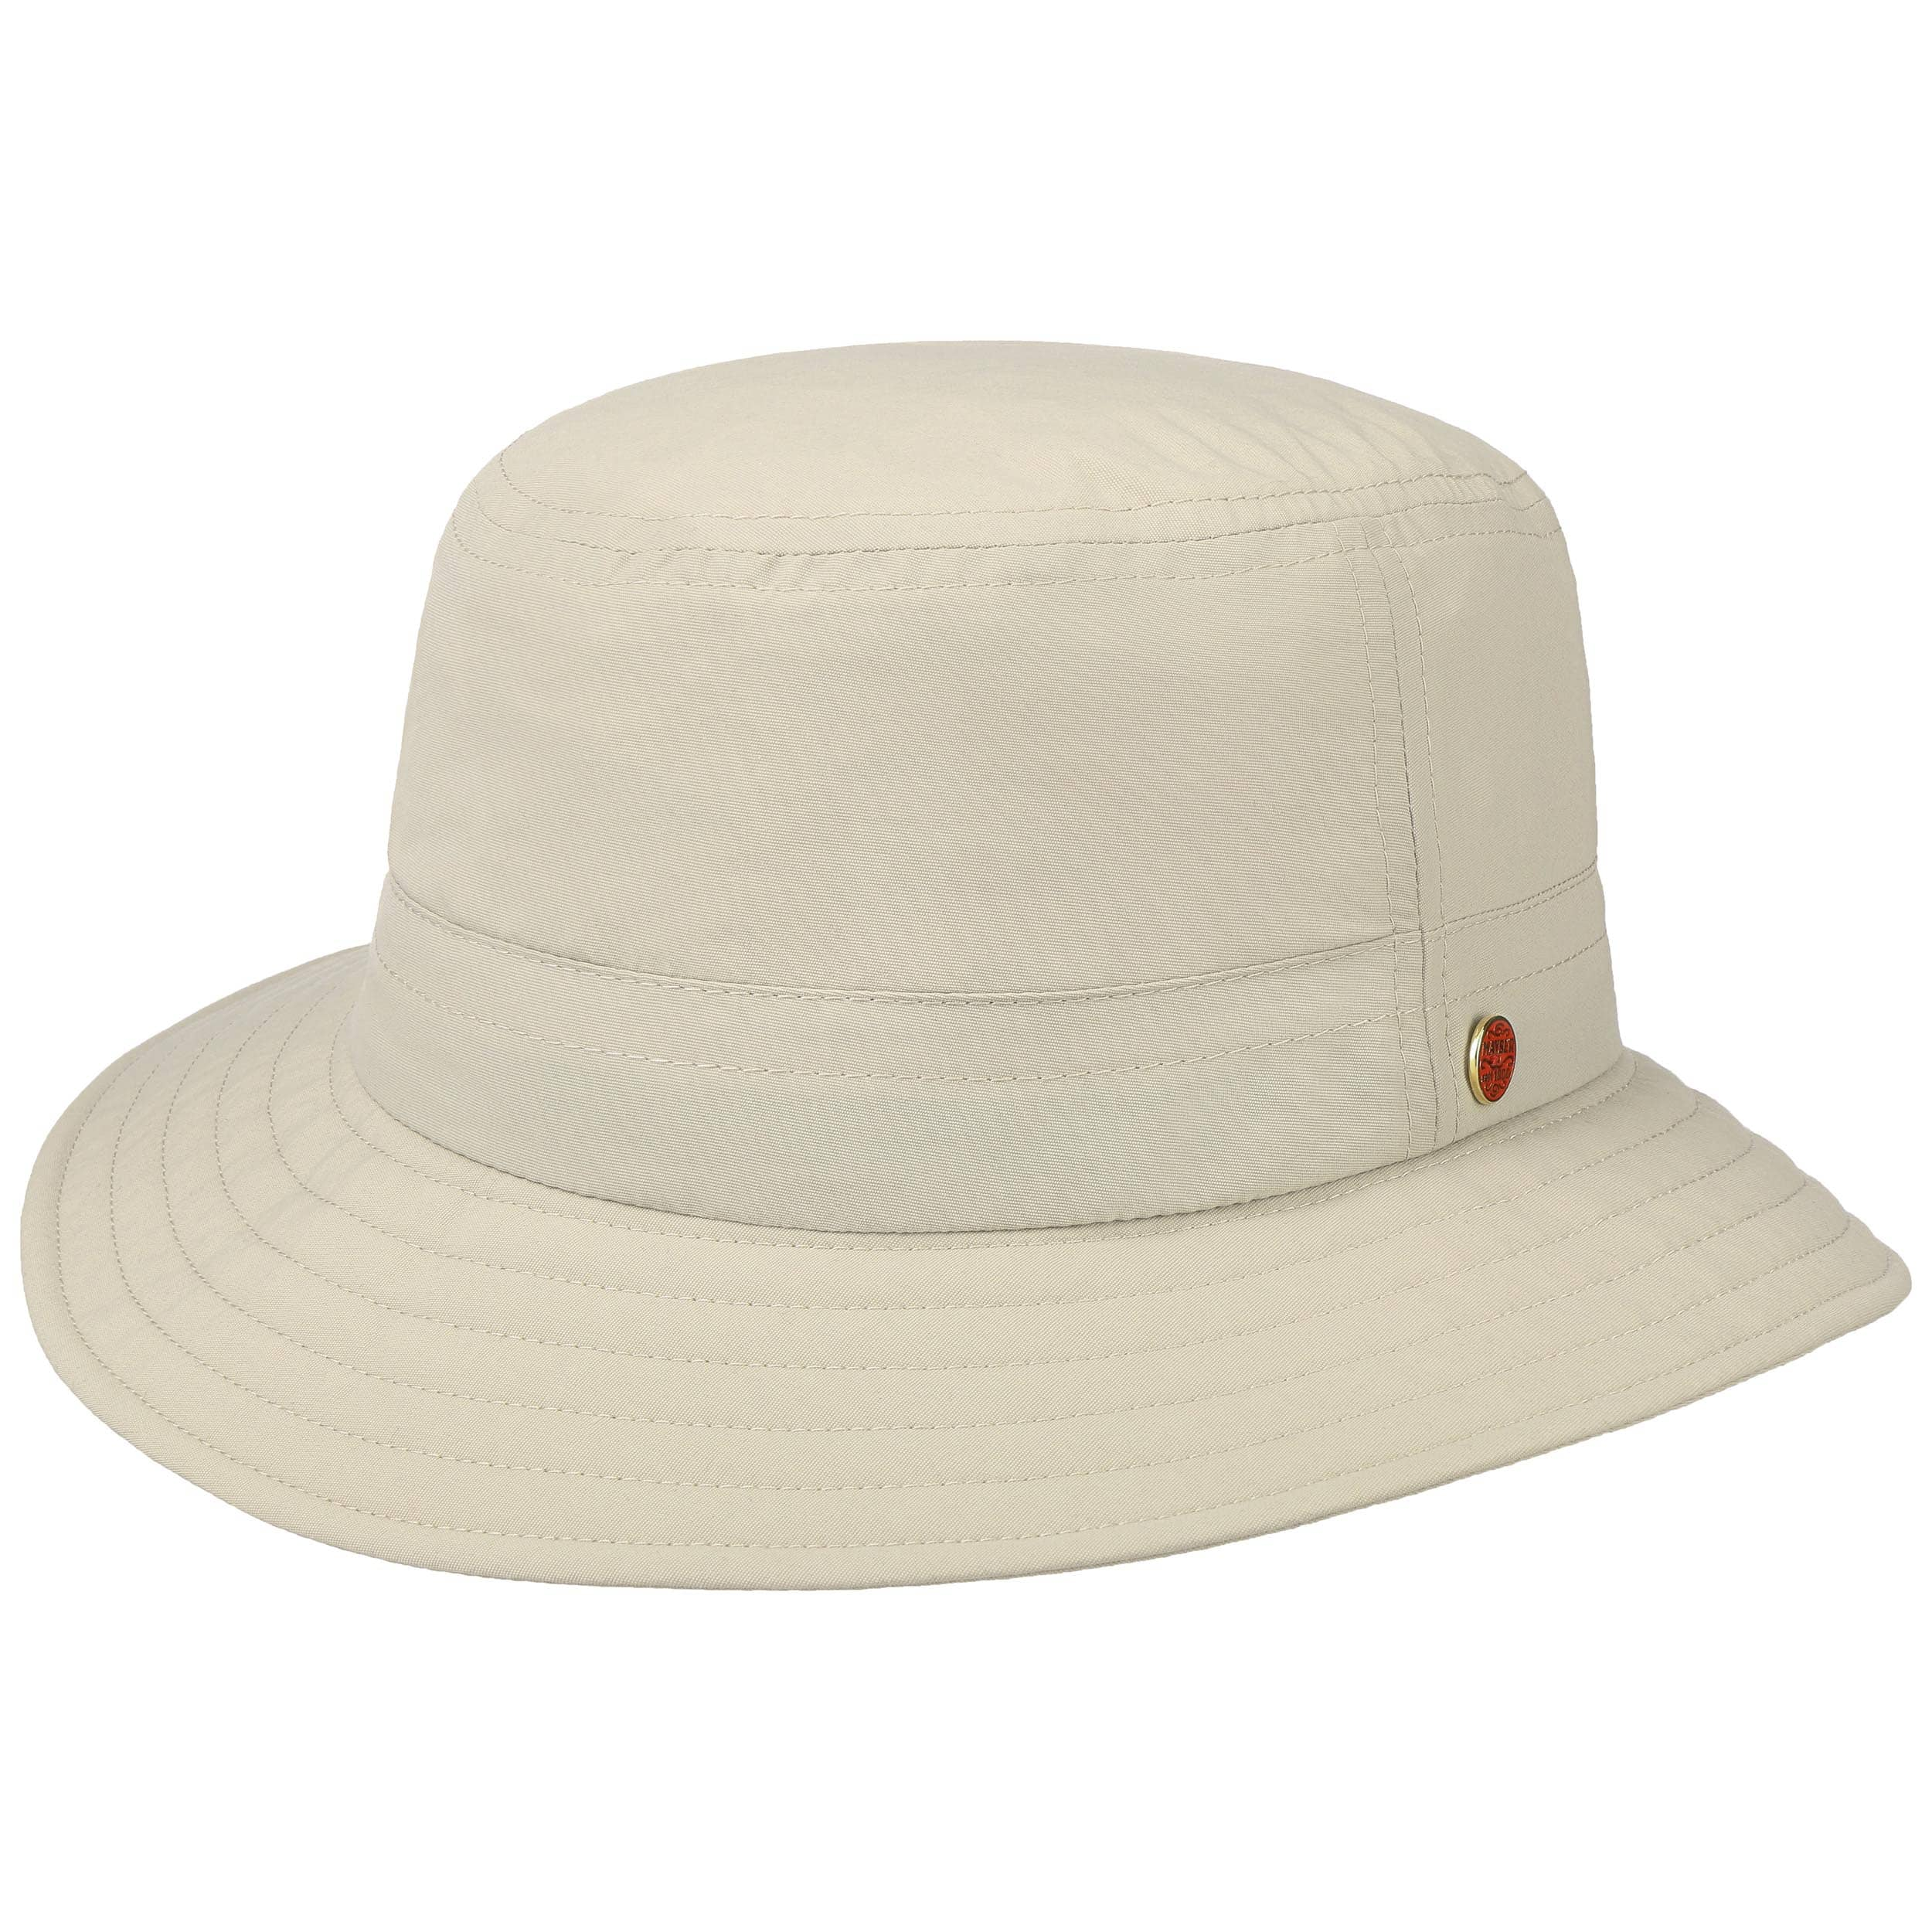 9e4c76b7b950 ... UV Protection Sun Hat by Mayser - beige 4 ...